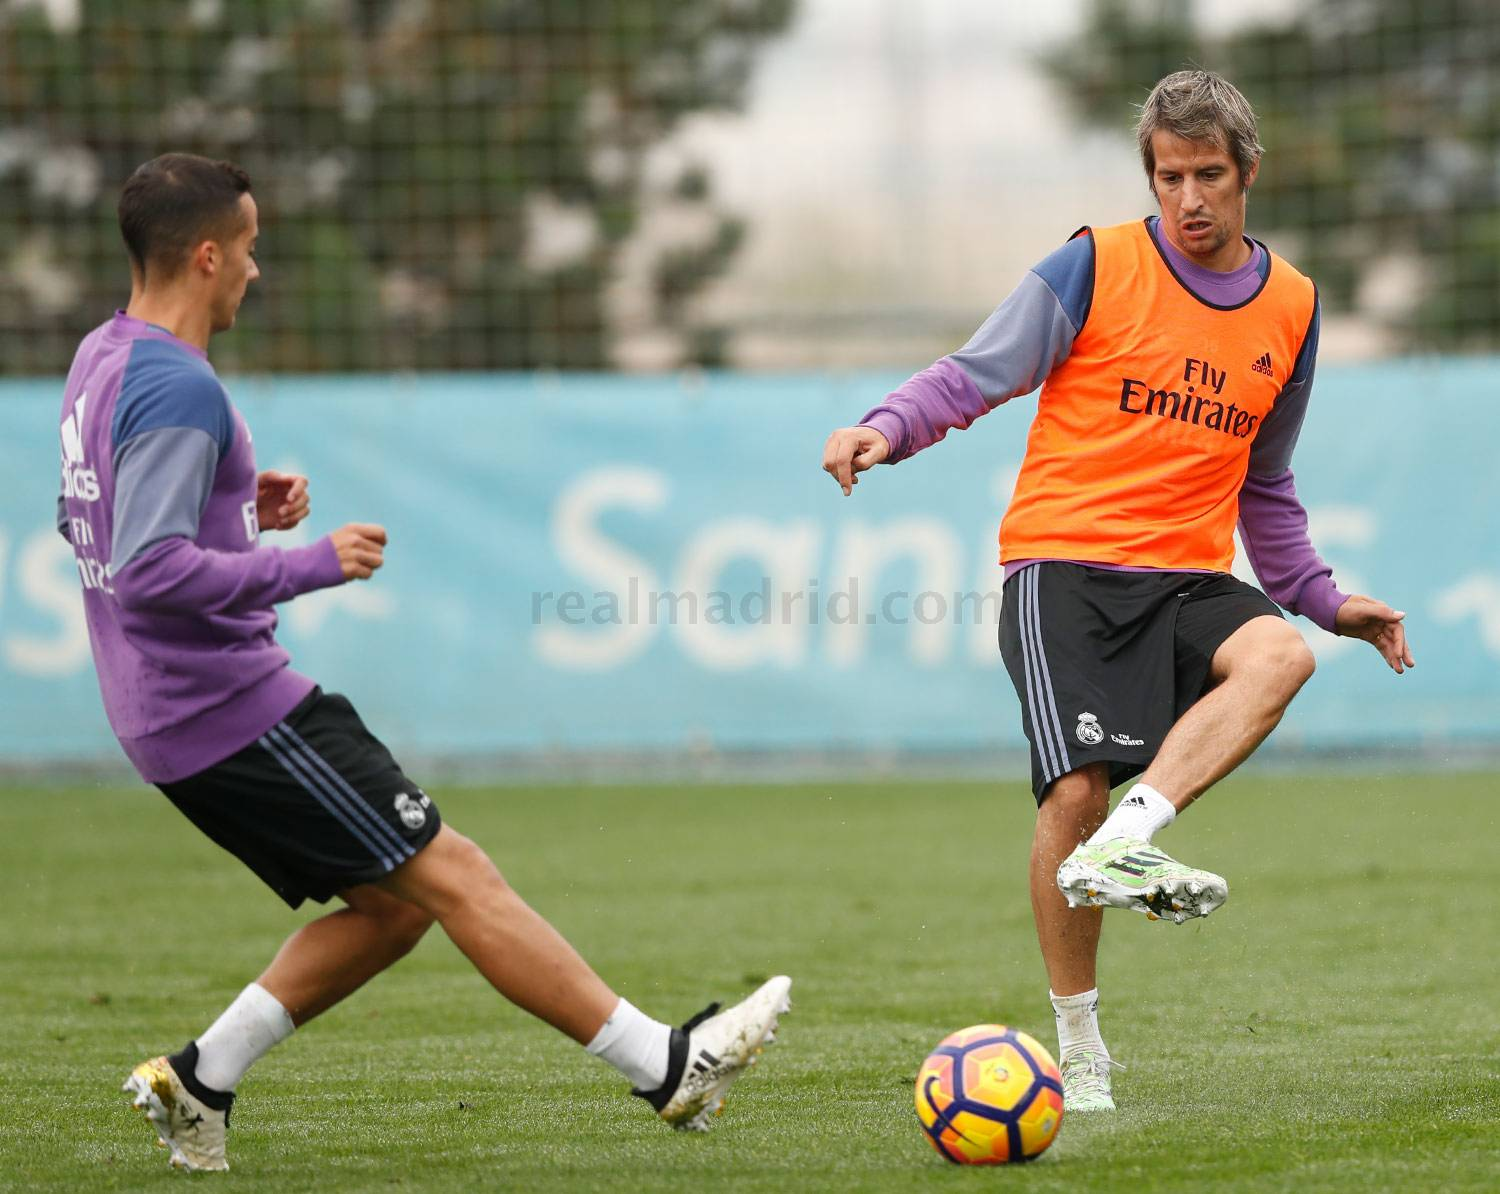 Real Madrid - Entrenamiento del Real Madrid - 28-10-2016